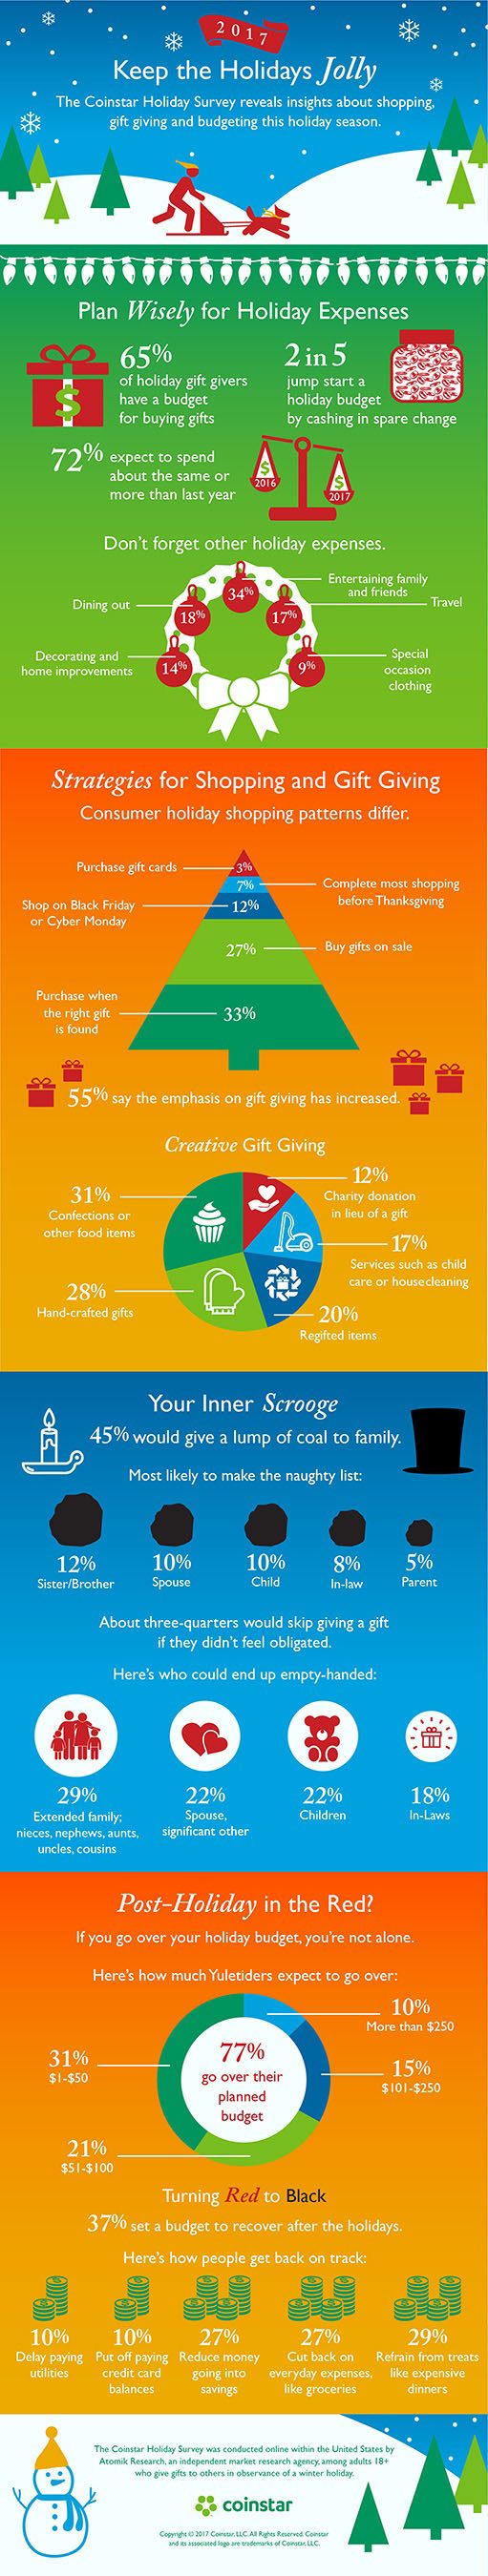 """The Coinstar Holiday Survey, conducted among 2,000 U.S. adults, reports that the majority (65%) will set a budget this holiday season. The holiday infographic showcases results including budgeting and shopping strategies, creative gift giving, the """"Scrooge effect"""" as well as ways to recover post-holiday if budget limits are exceeded."""